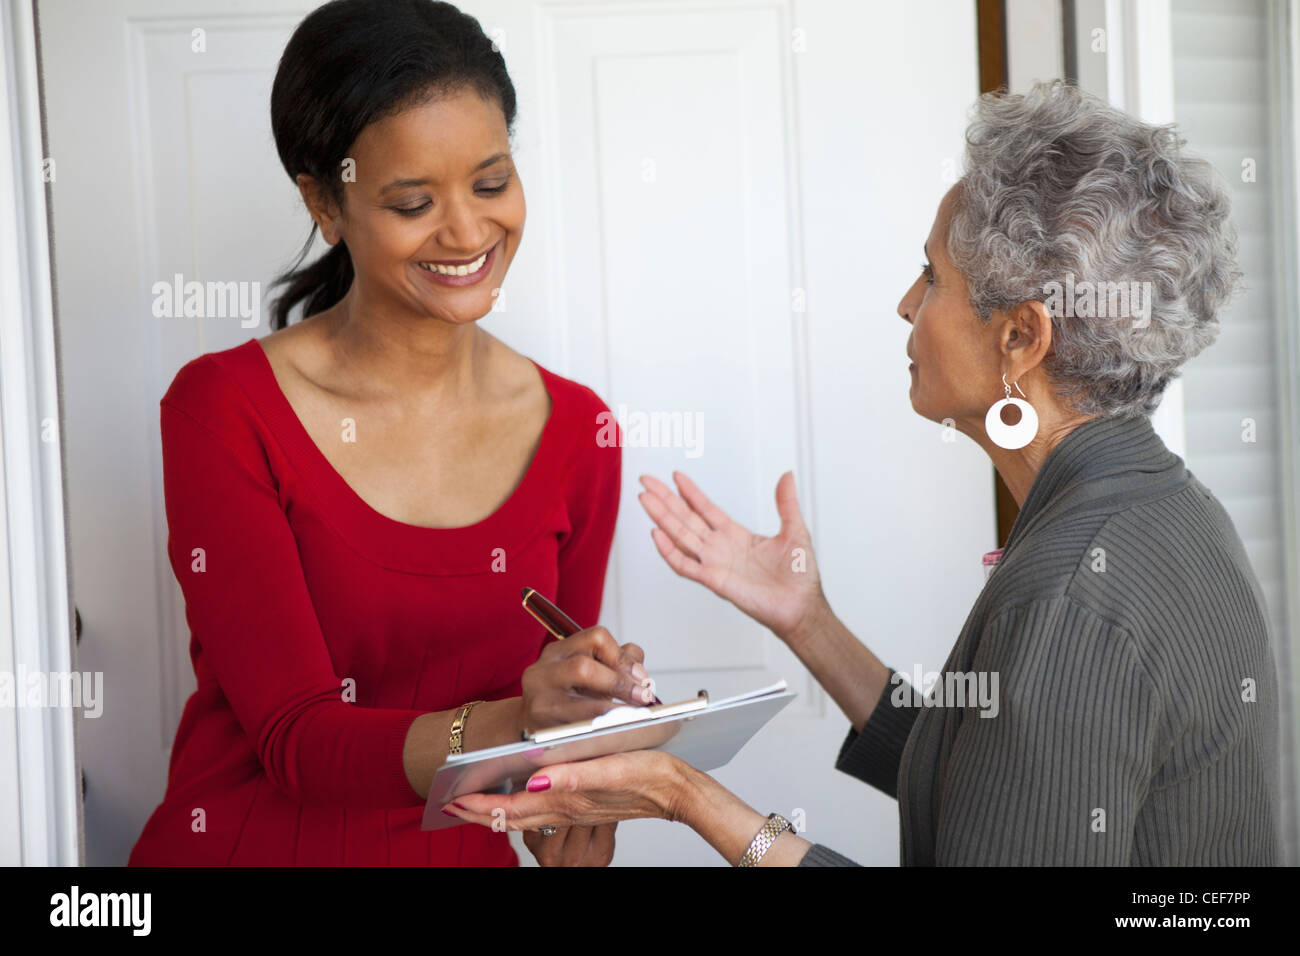 Black woman signs a petition at her front door - Stock Image